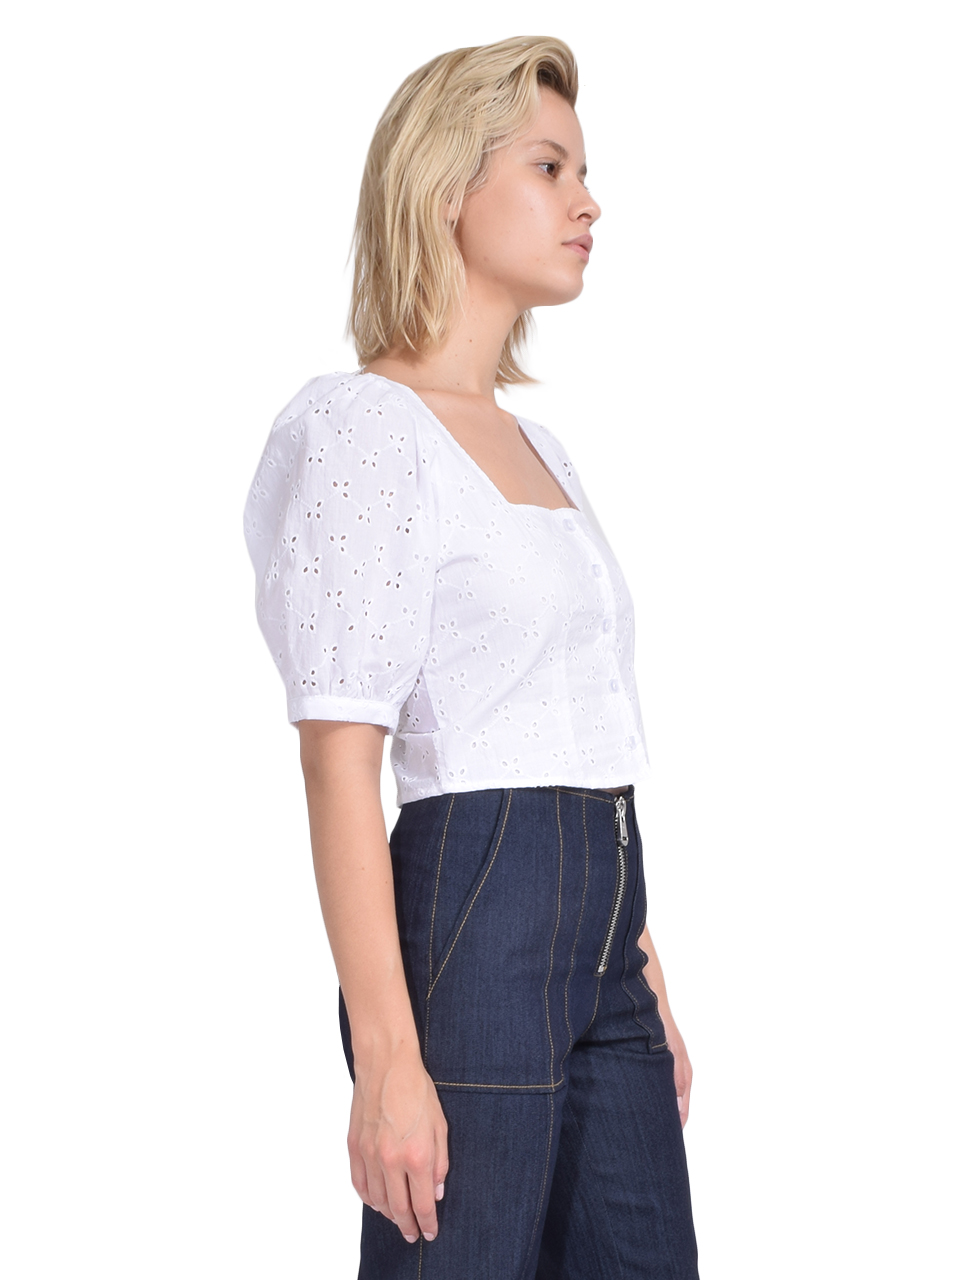 Rachel Pally Eyelet Kimmie Top in White Side View